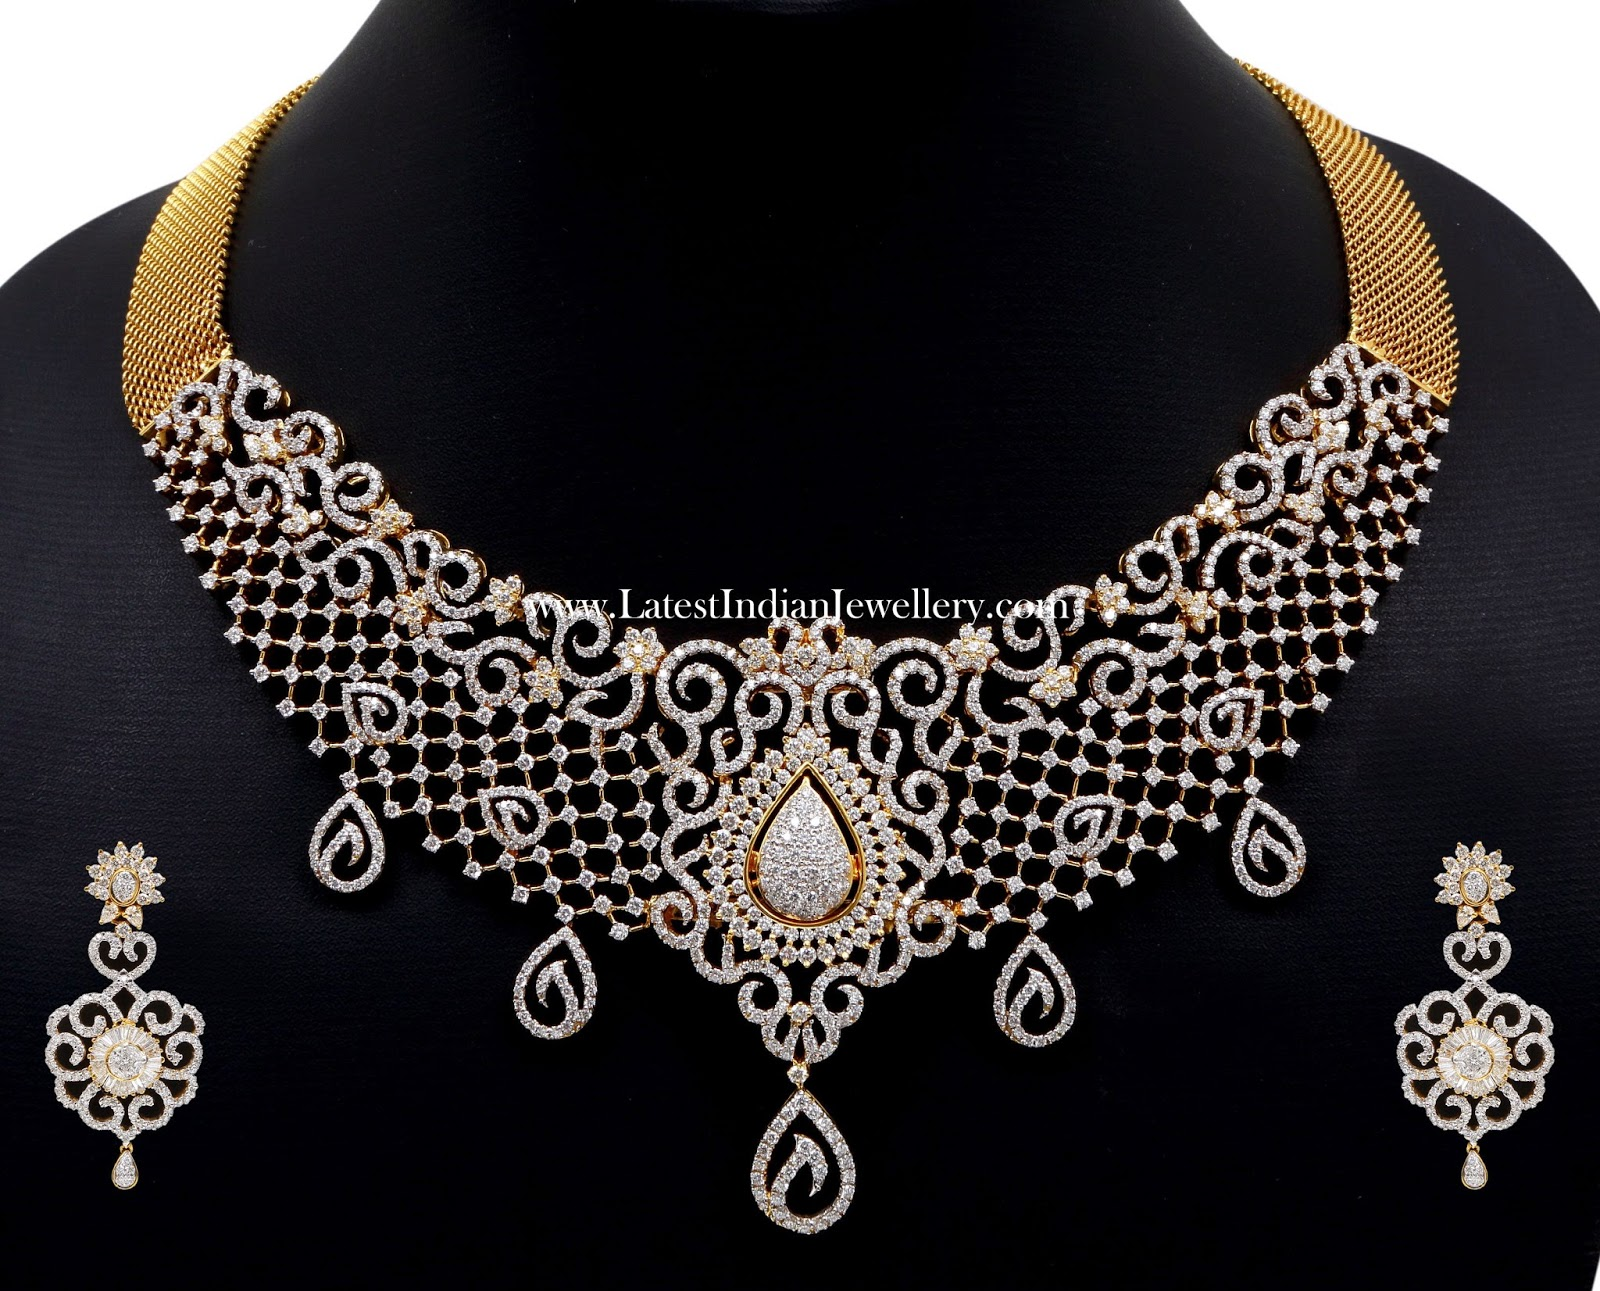 Luxurious Indian Diamond Necklace